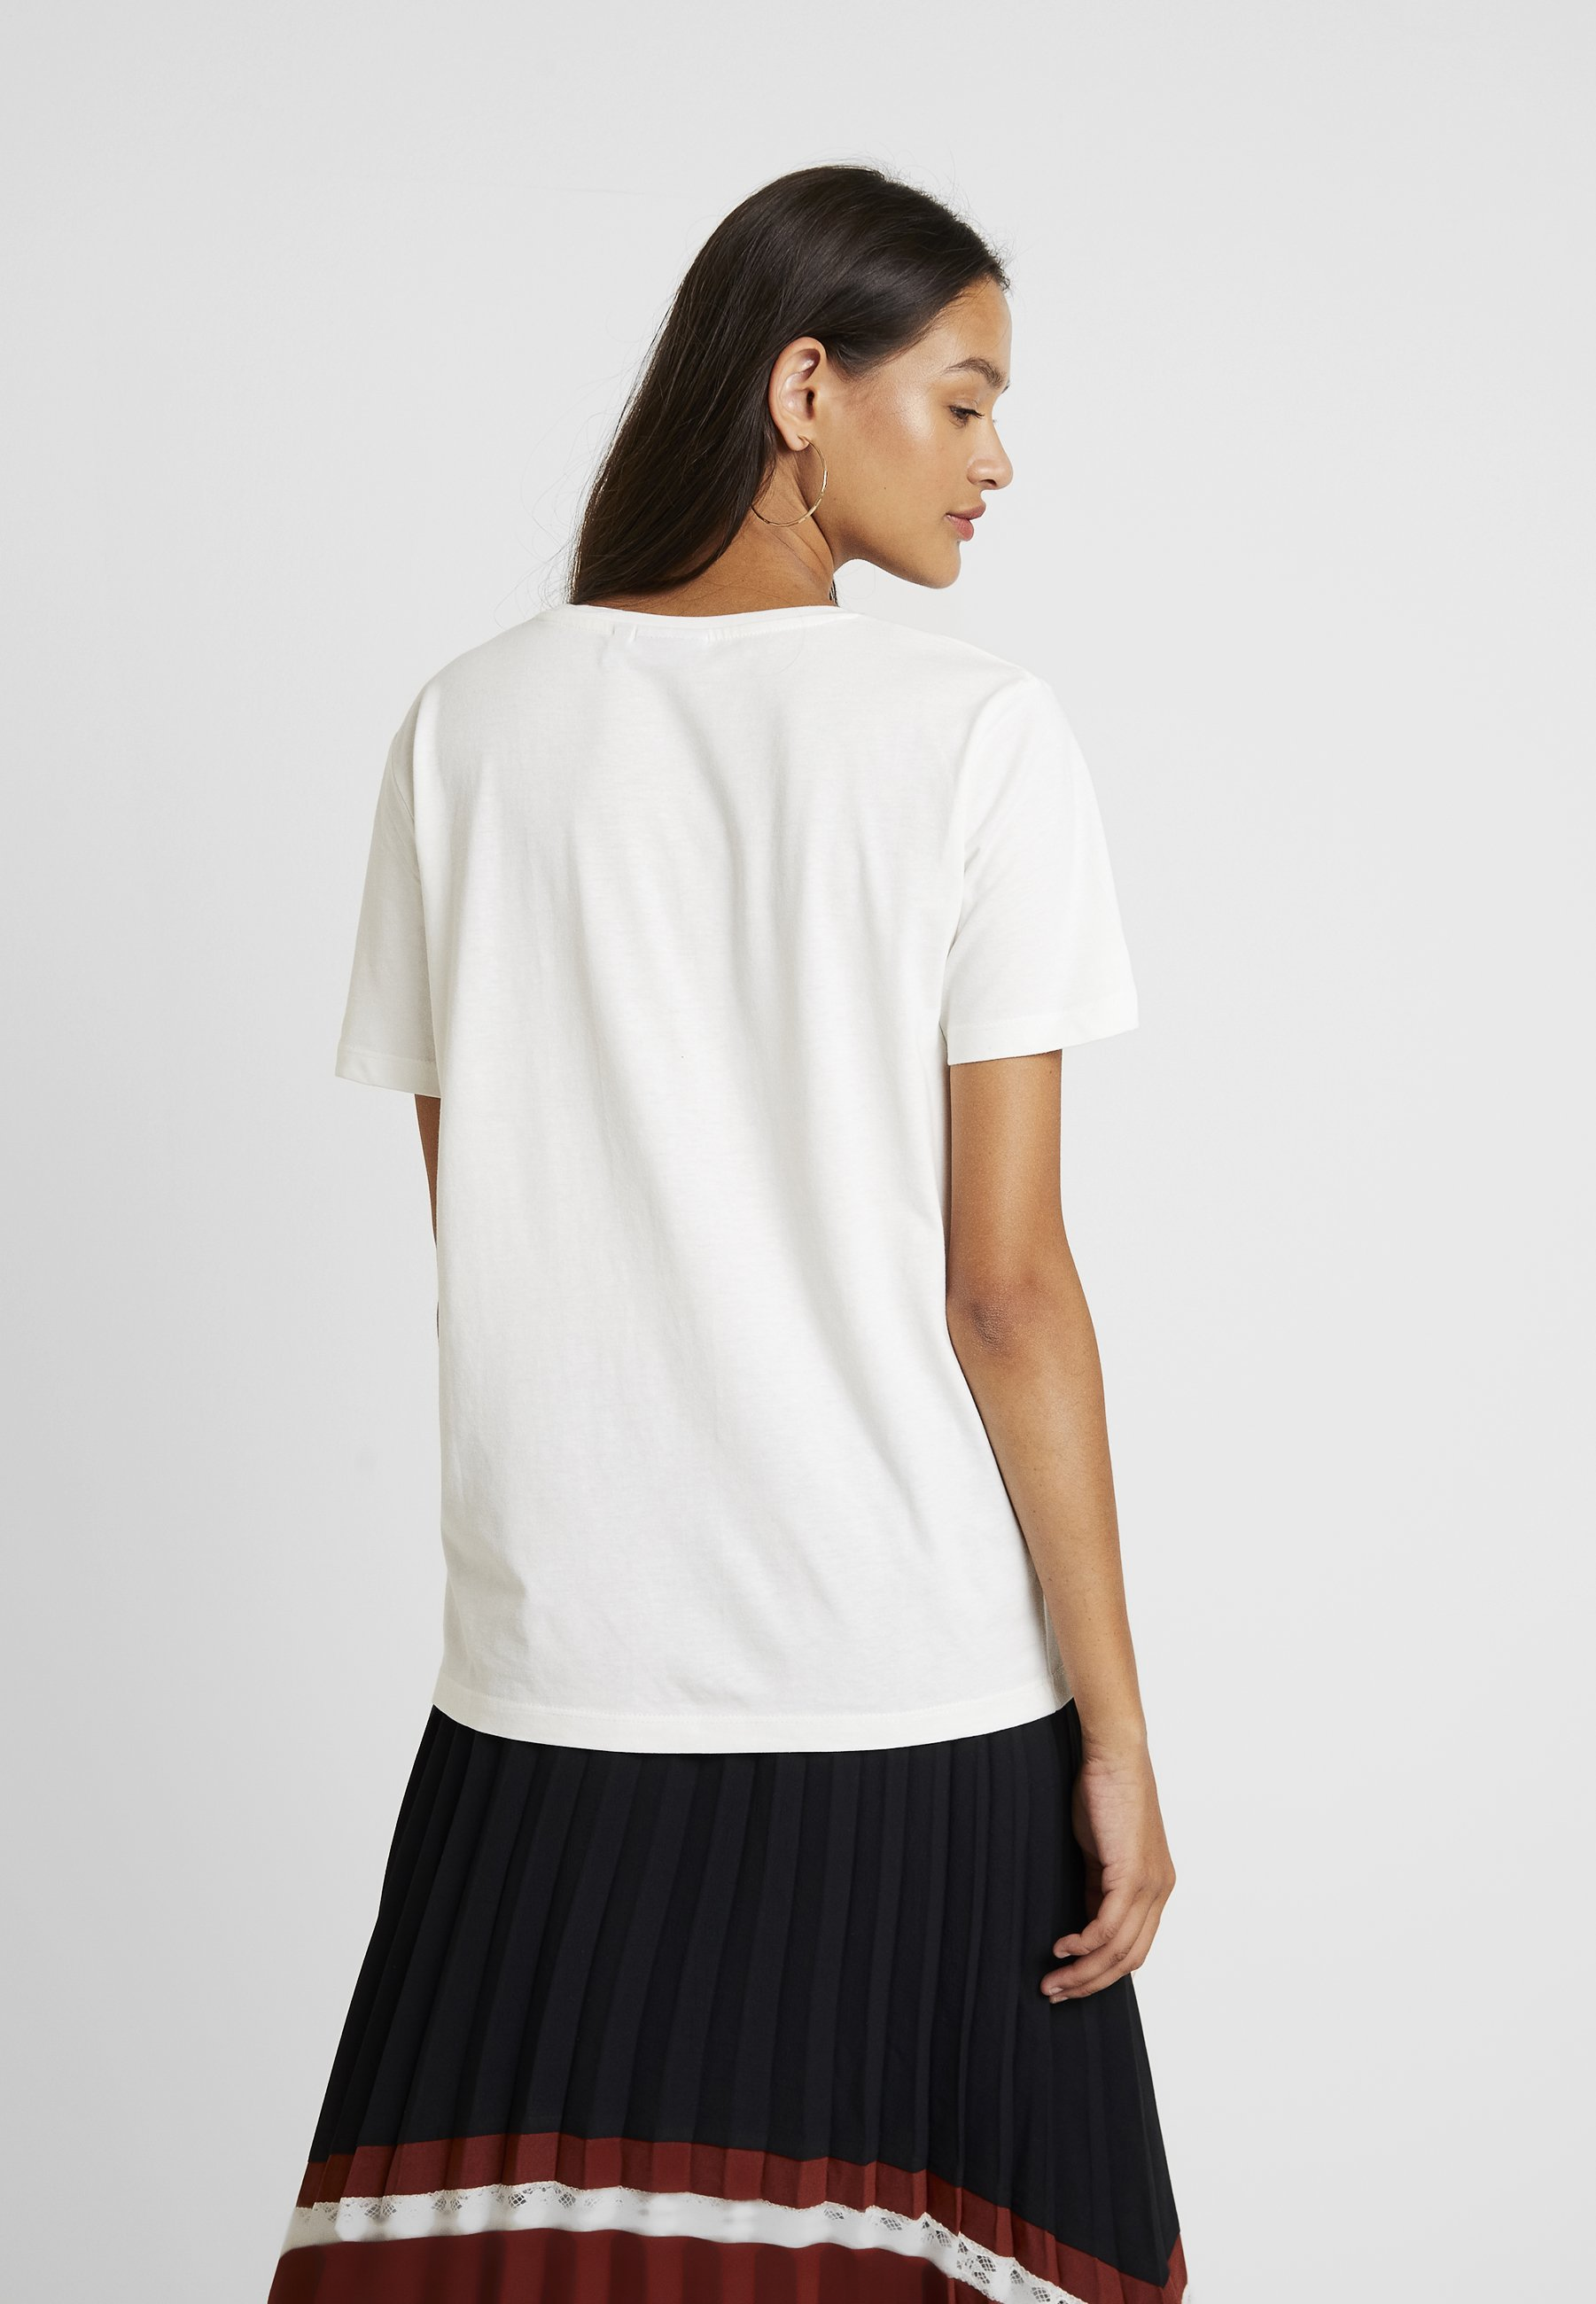 Bytukie White B young FlockT Imprimé shirt Off fyv7g6bY